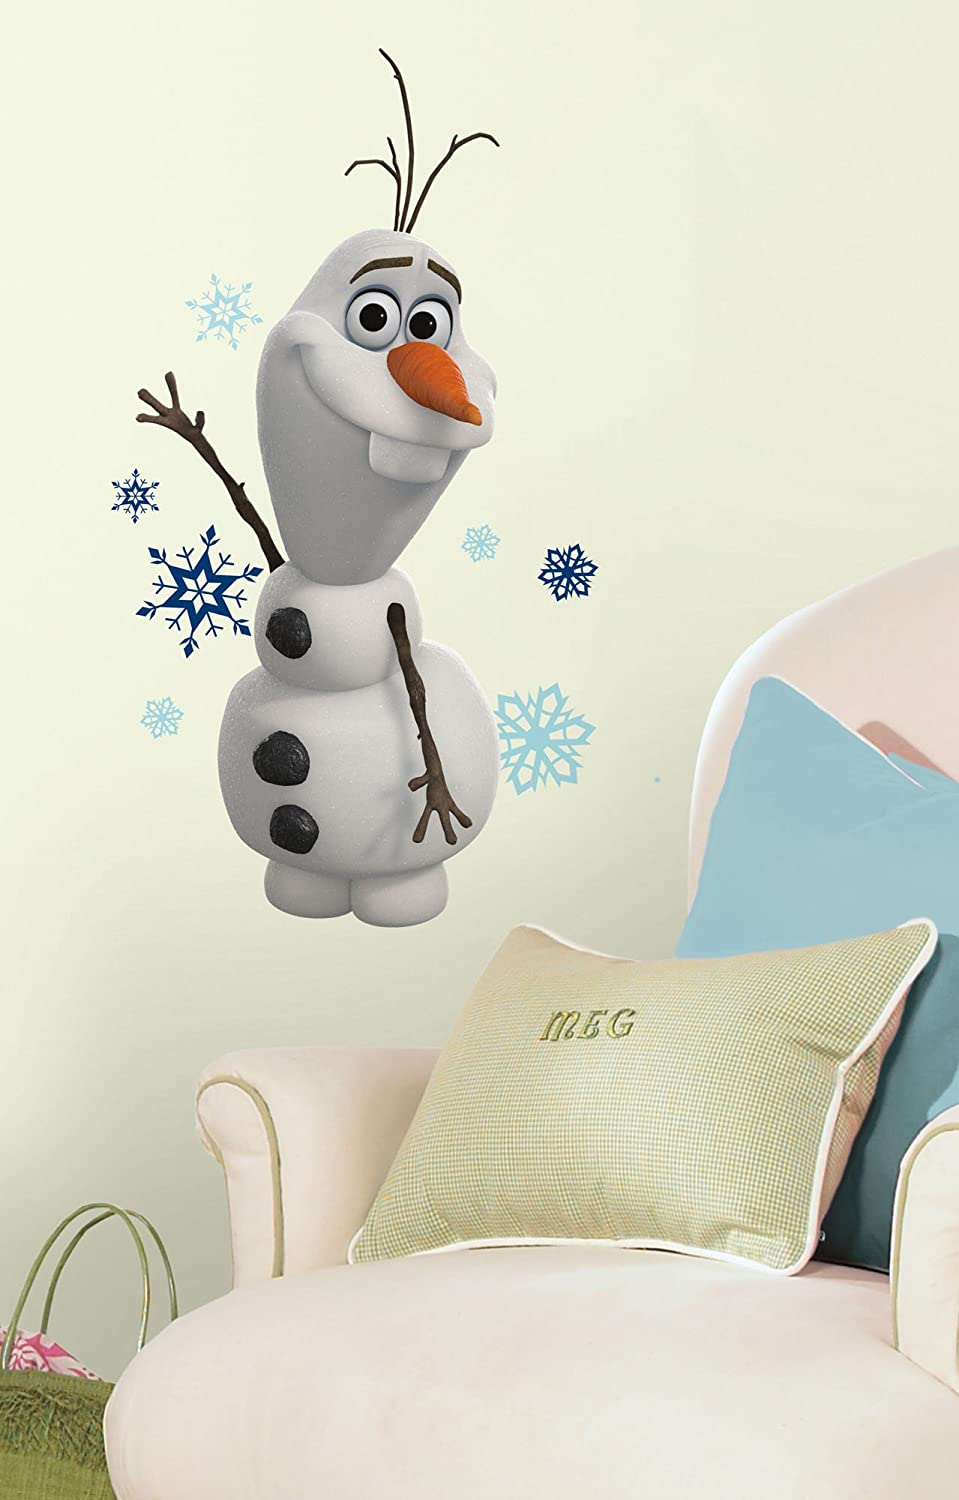 Great Roommates RMK2372SCS Frozen Olaf The Snow Man Peel And Stick Wall Decals,  25 Count   Decorative Wall Appliques   Amazon.com